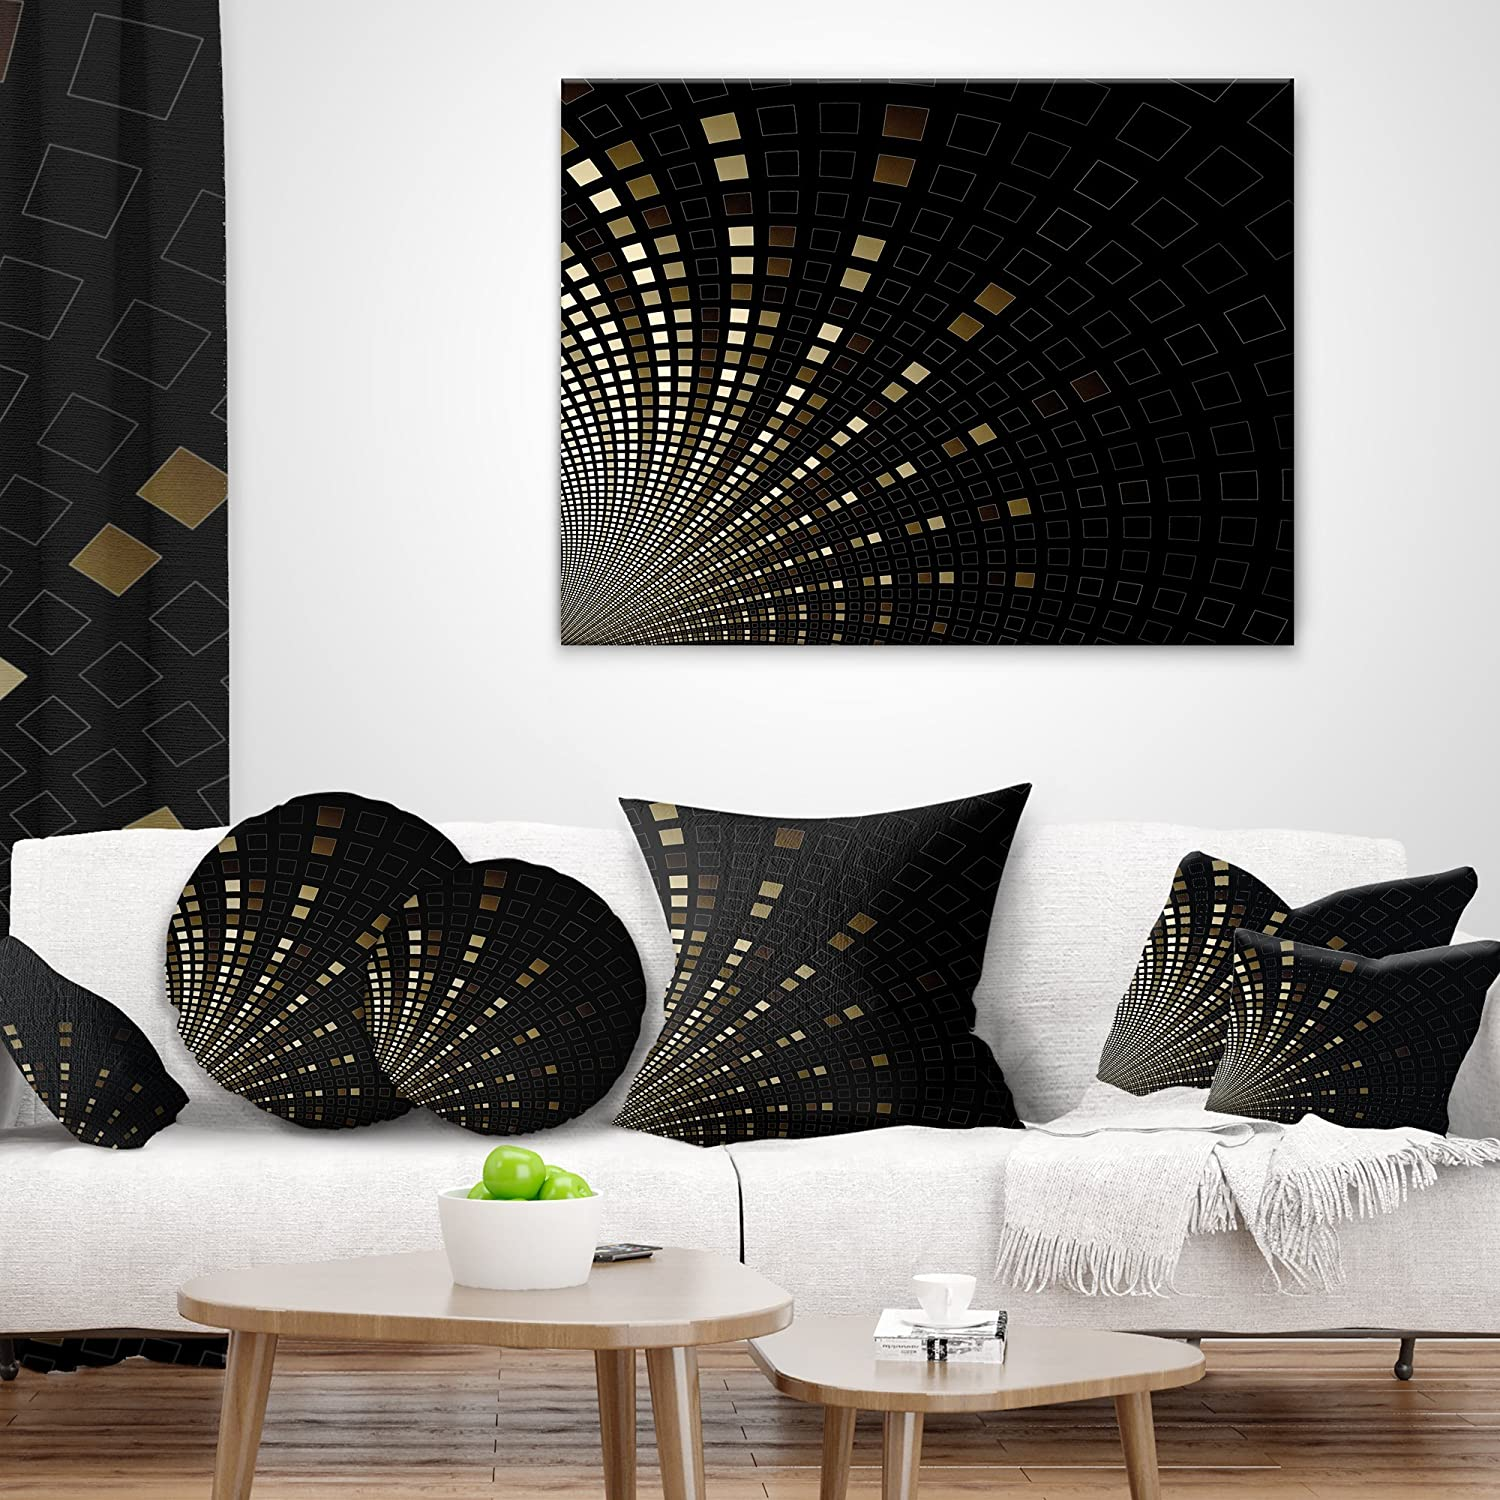 x 16 in Designart CU16418-16-16 Gold Square Pixel Mosaic on Black Abstract Cushion Cover for Living Room Insert Printed On Both Side Sofa Throw Pillow 16 in in